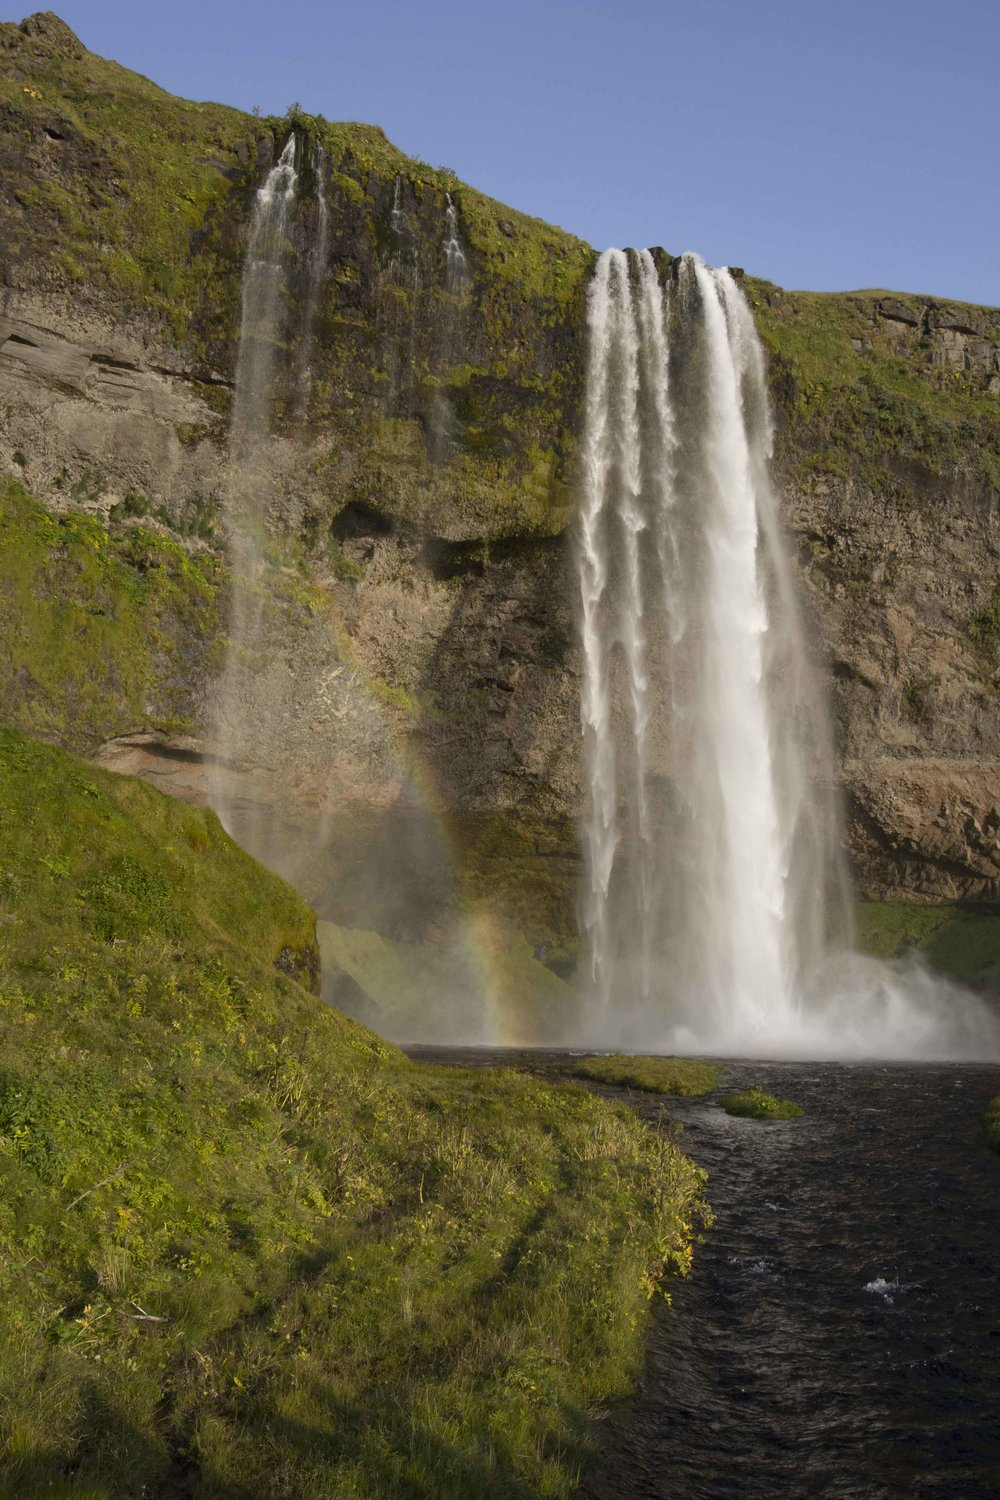 Rainbows at Seljalandsfoss campground. Now we see some crowds of tourists.  Love that you can walk behind this waterfall.